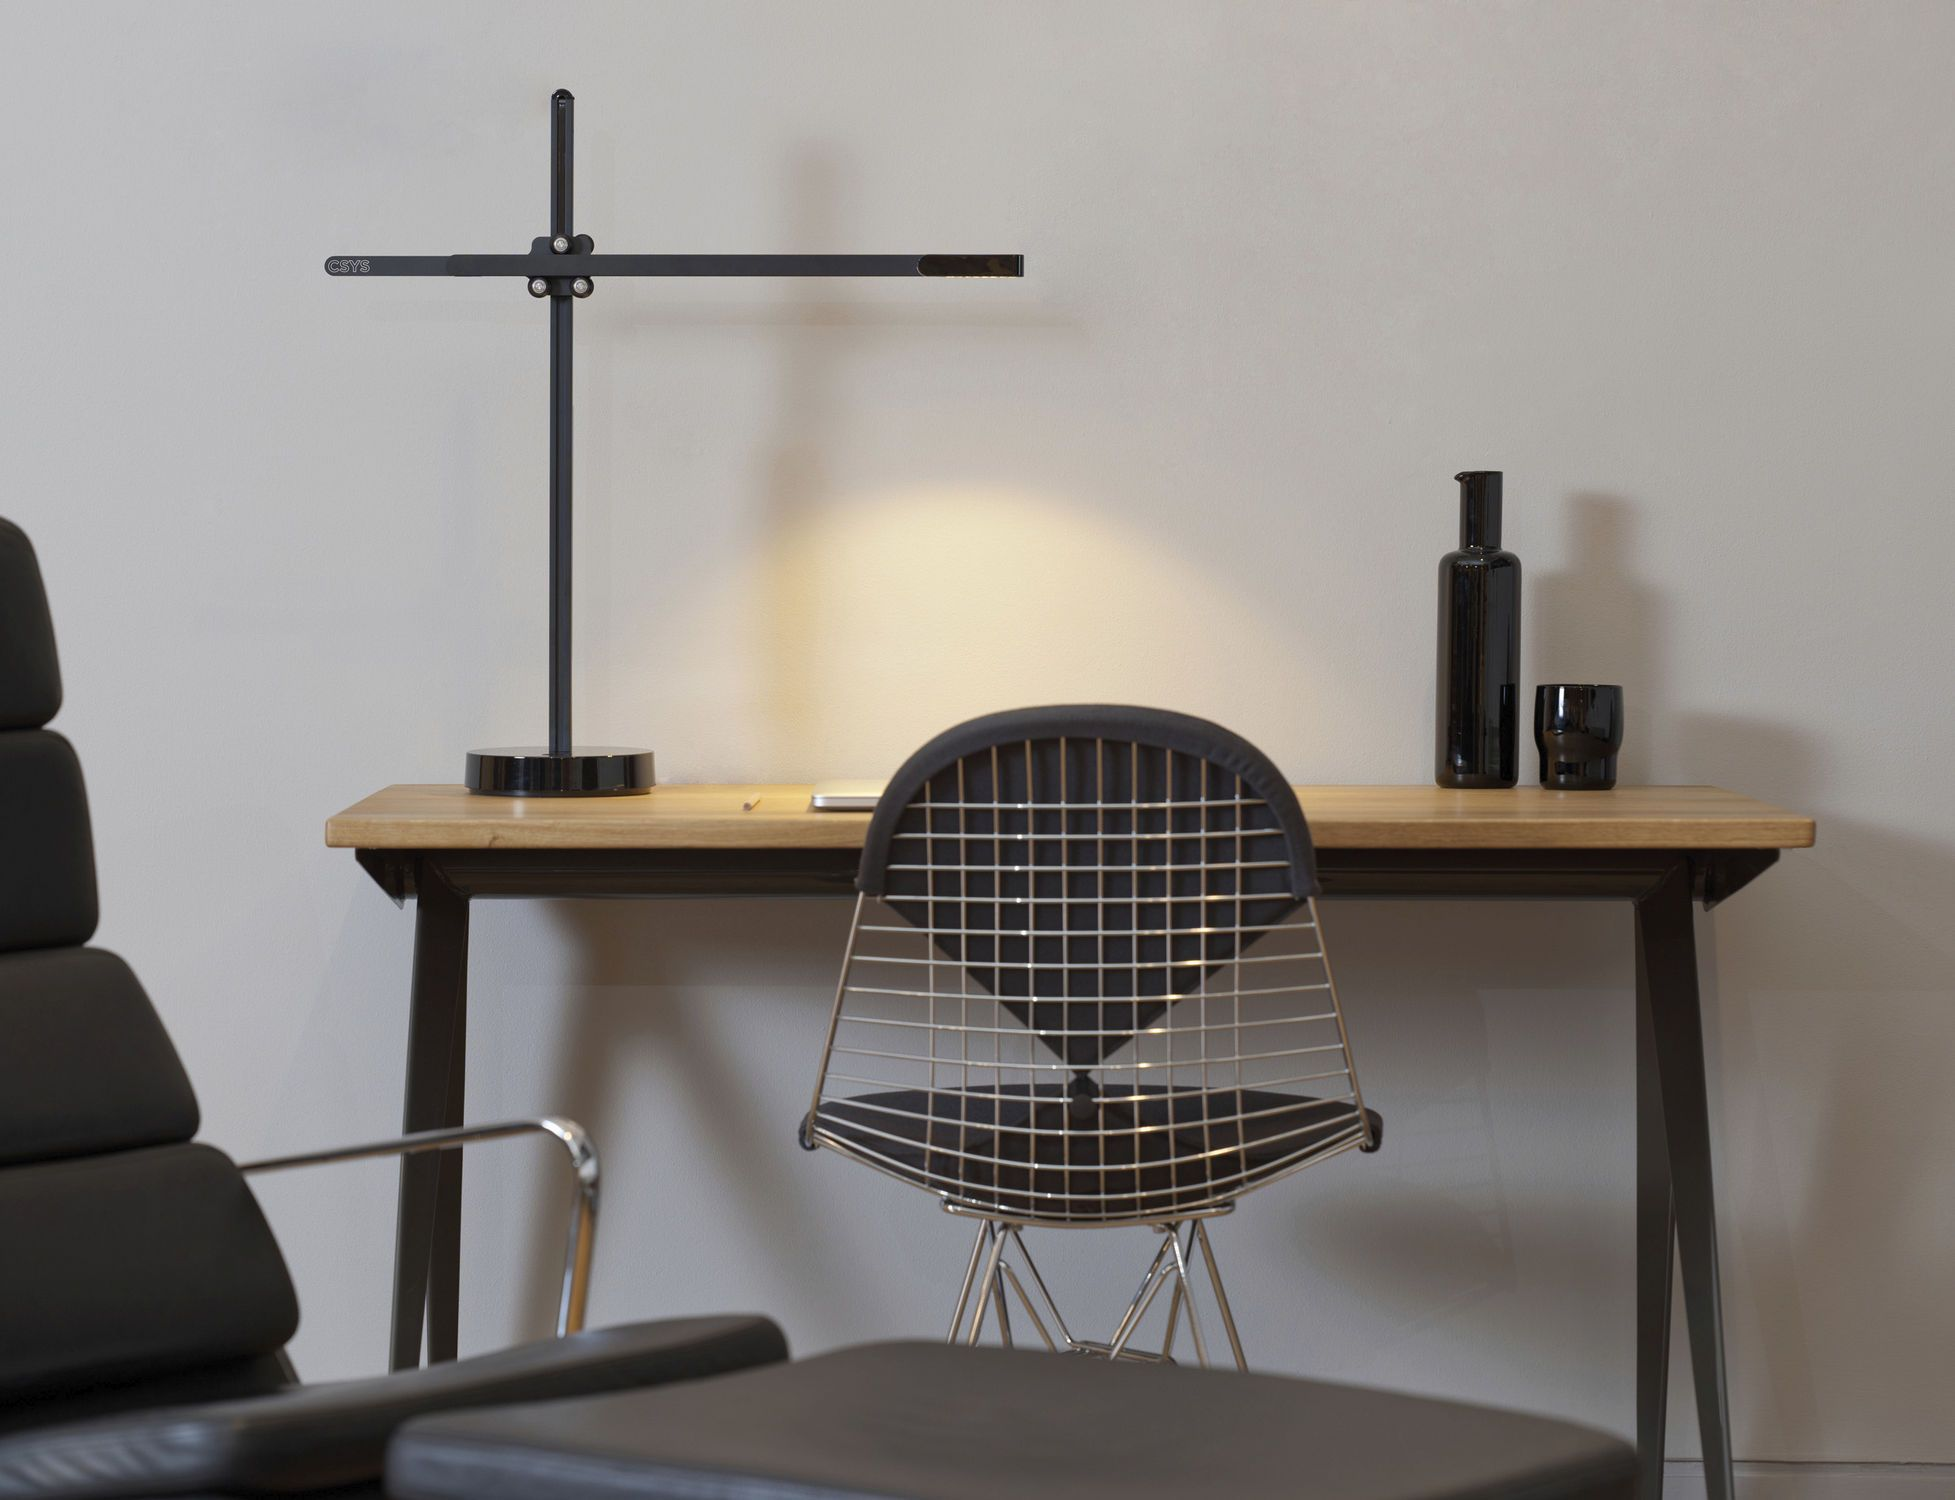 Csys Desk/Table Lamp by Dyson Canada (With images) | Black ...